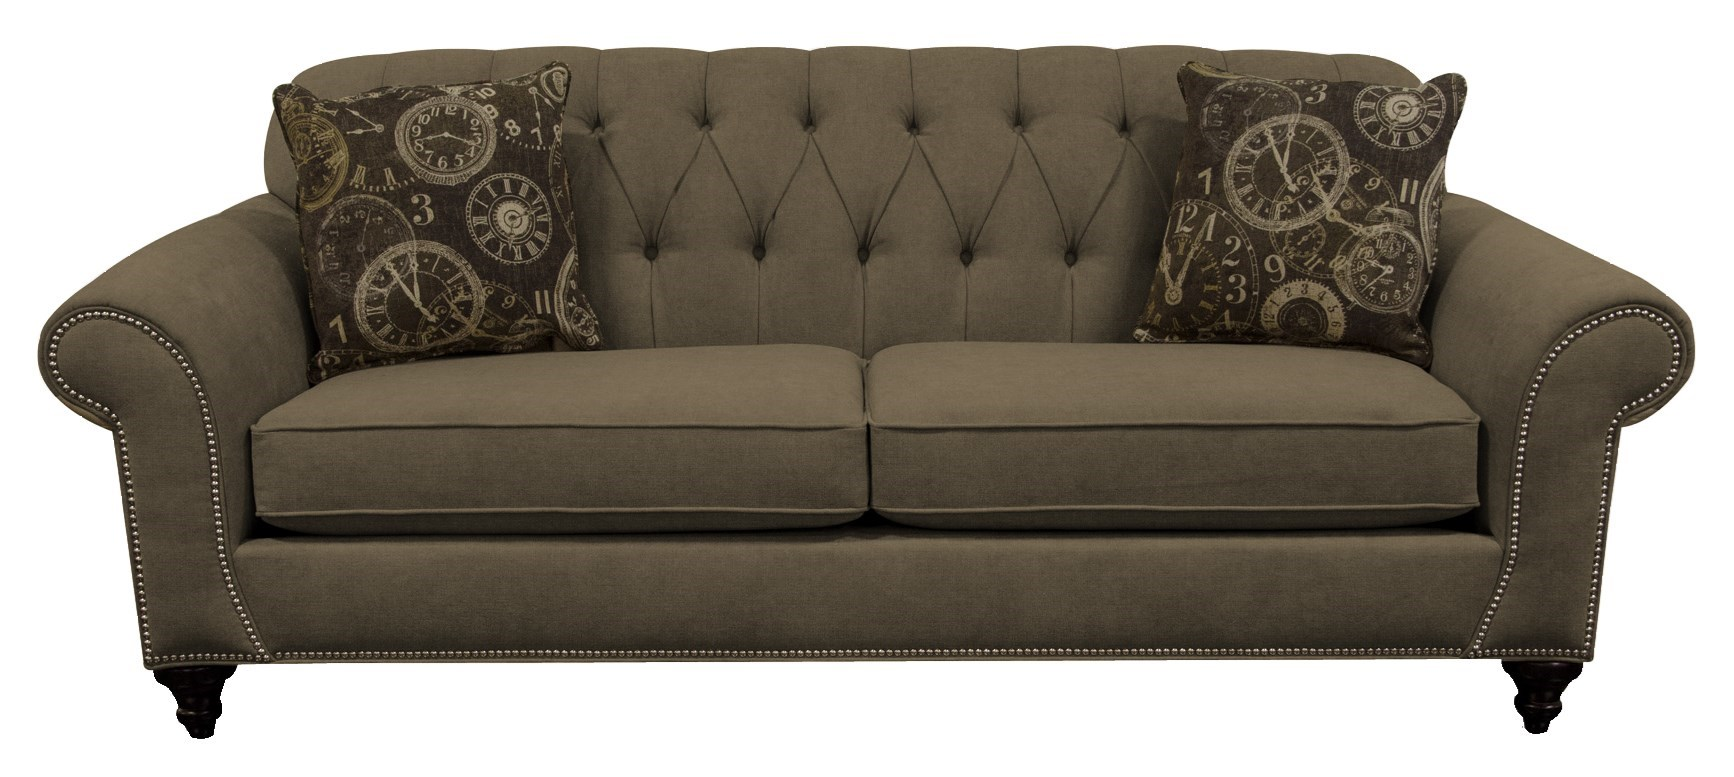 England Stacy Sofa With Nailheads And Button Tufted Seat